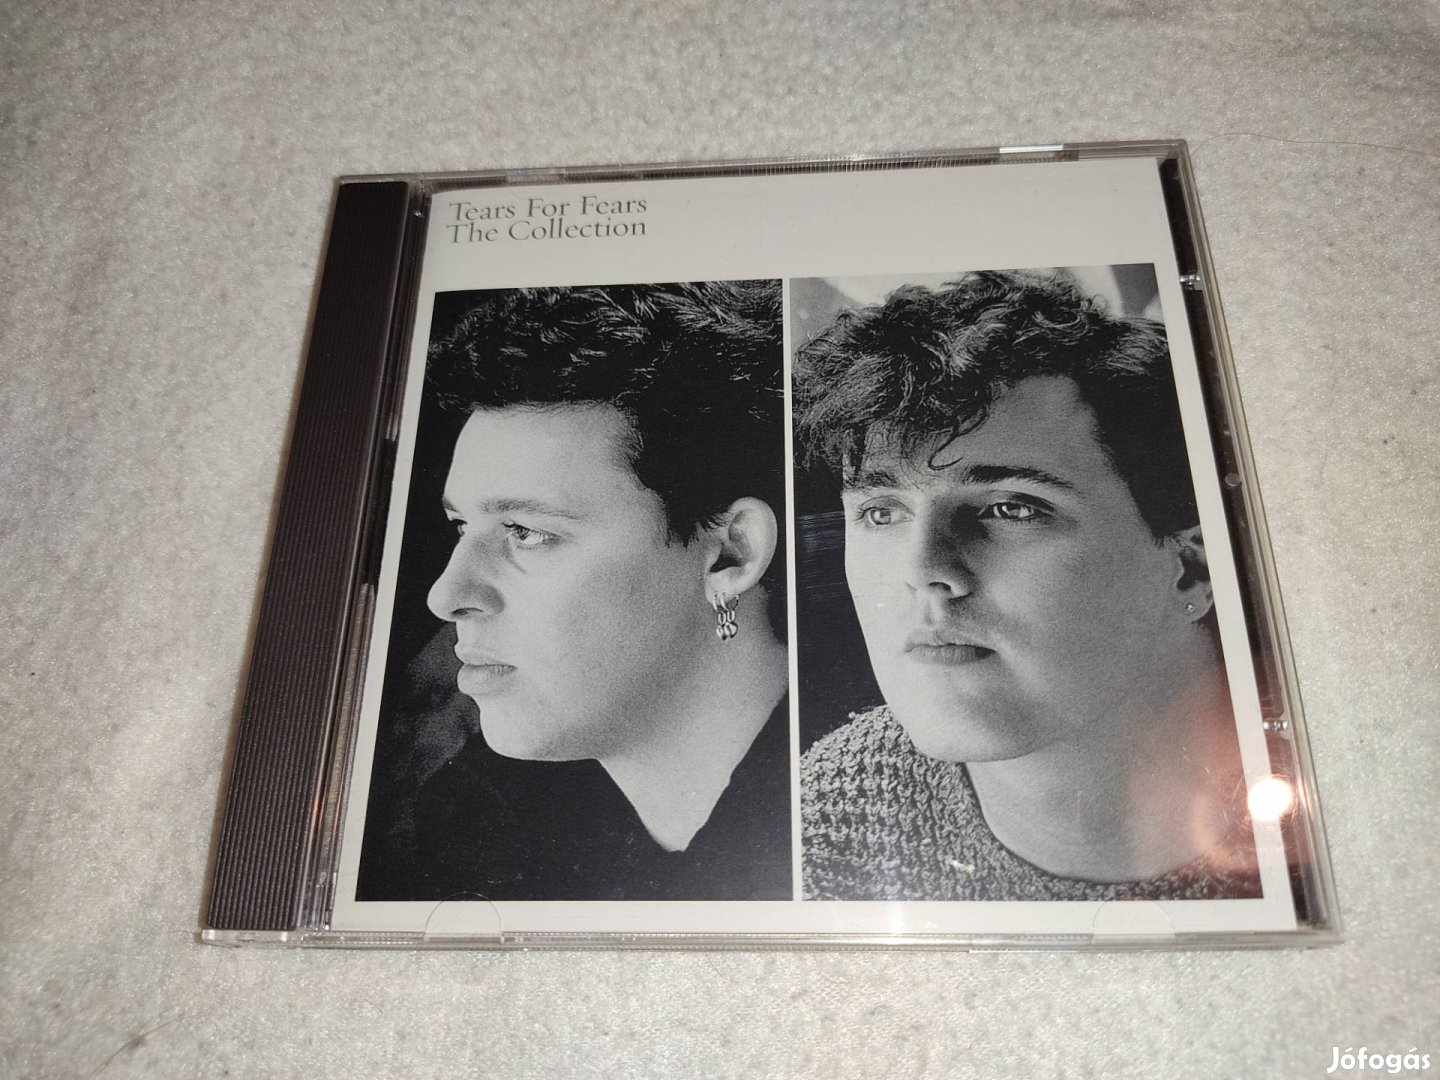 Tears For Fears - The Collection CD karcmentes